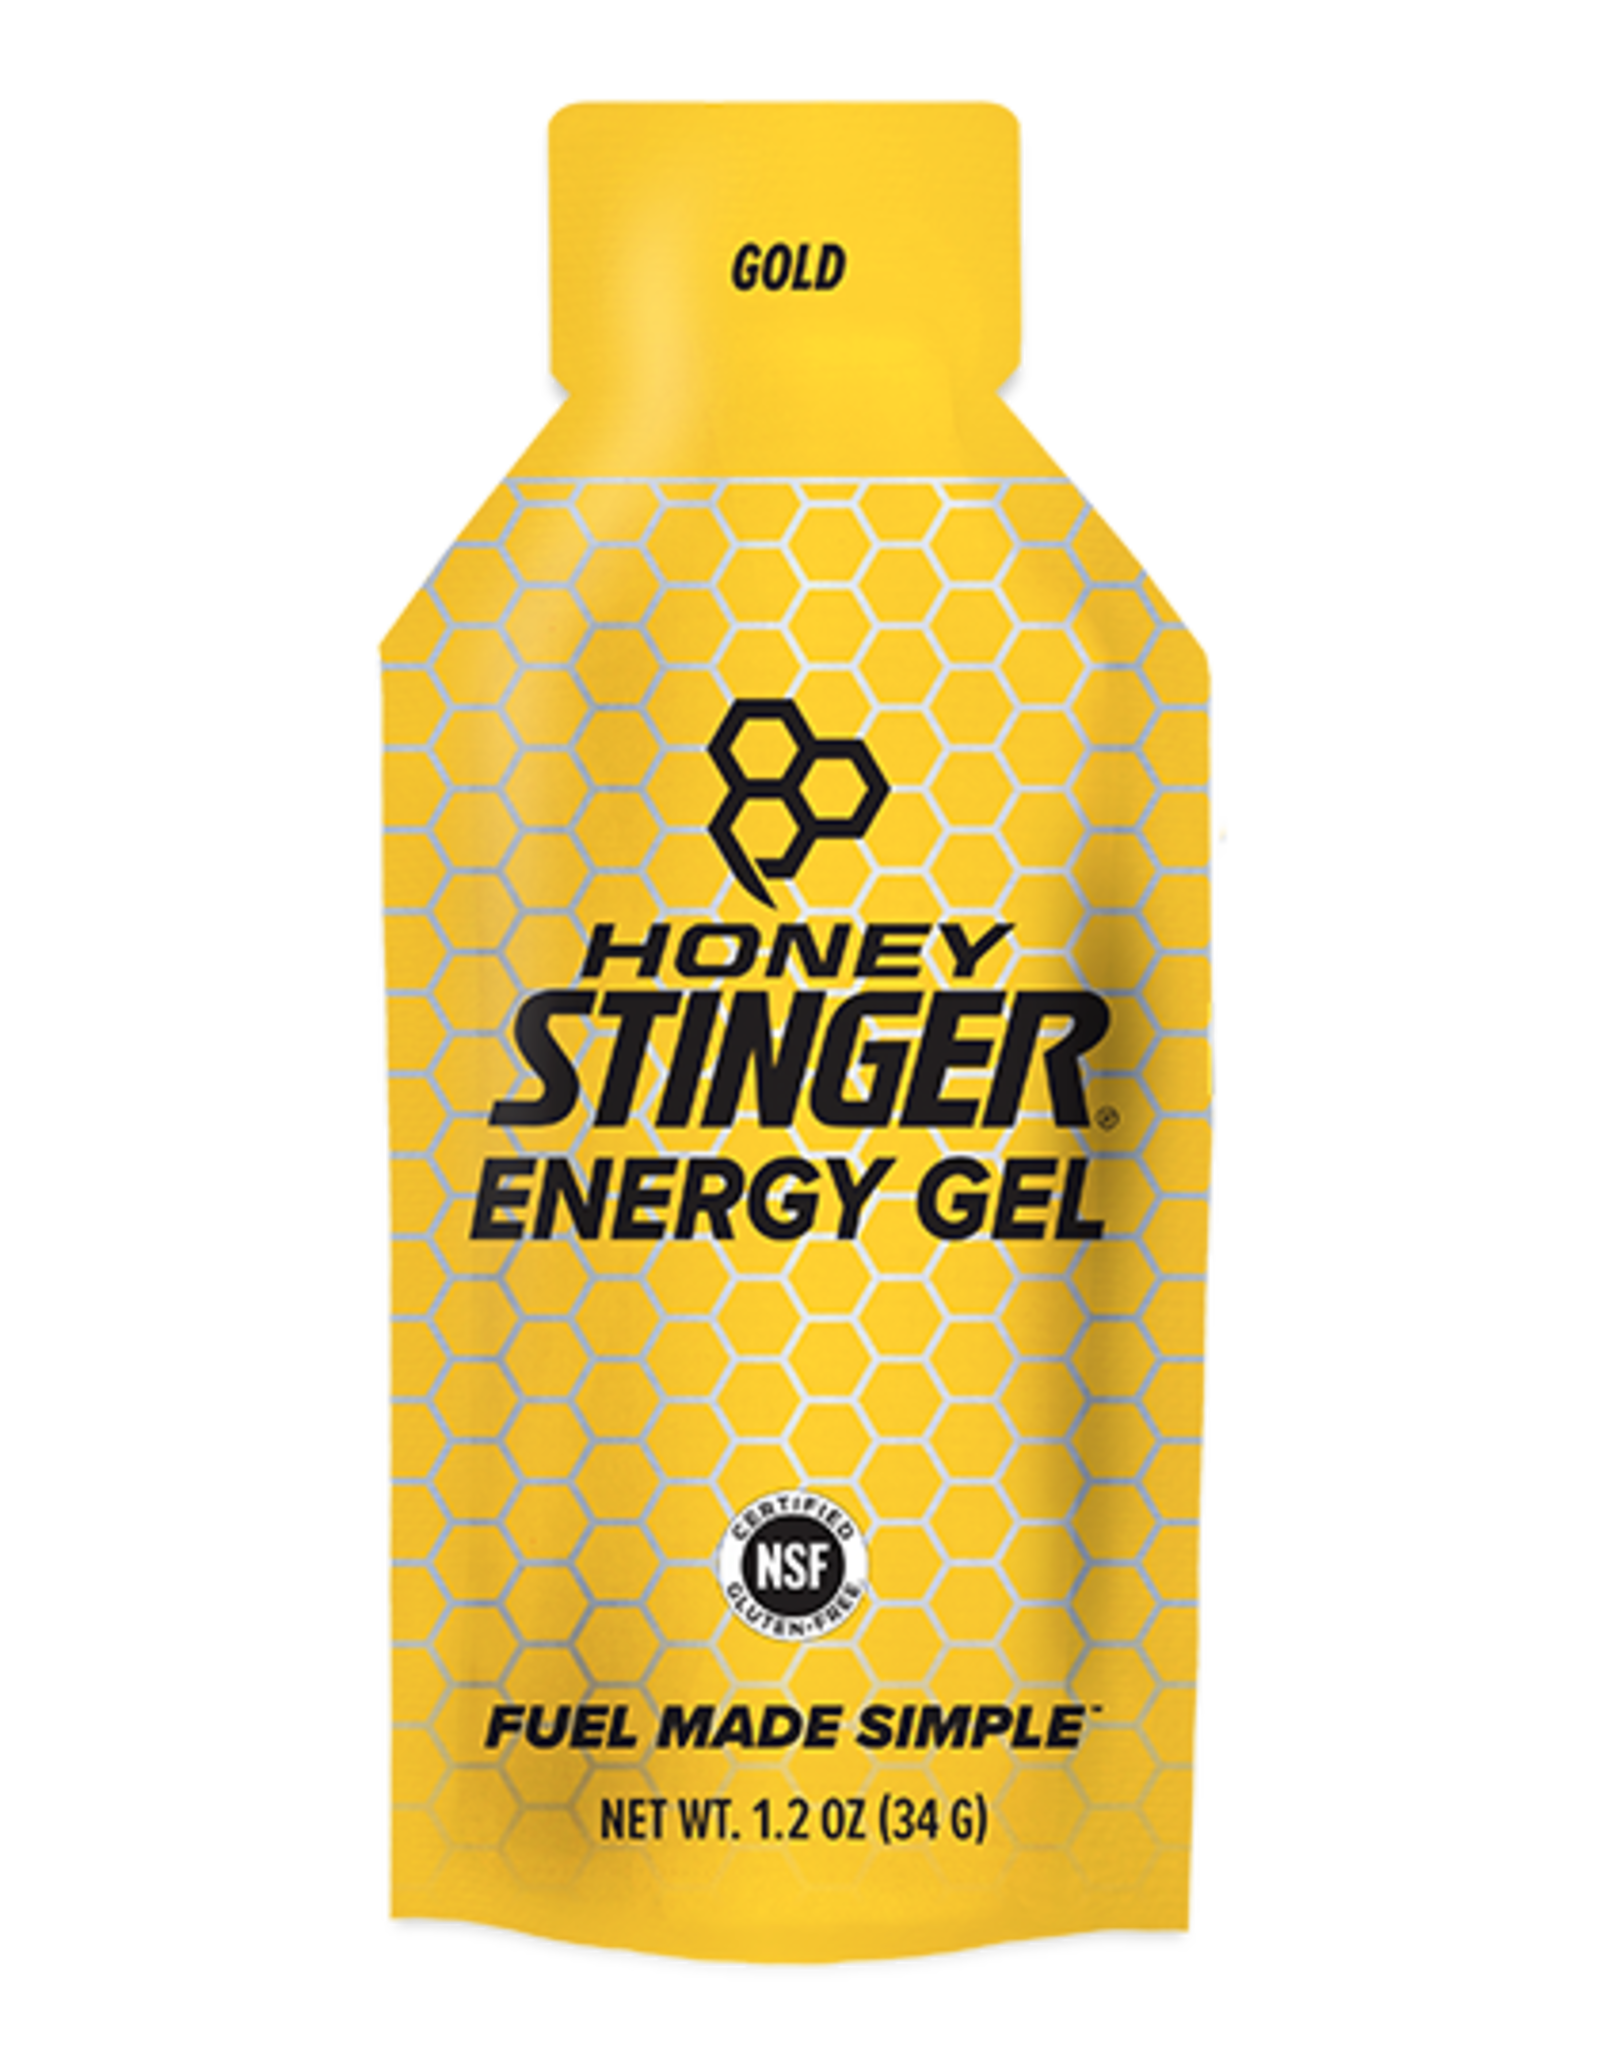 Honey Stinger Honey Stinger Organic Energy Gel 24 Pack